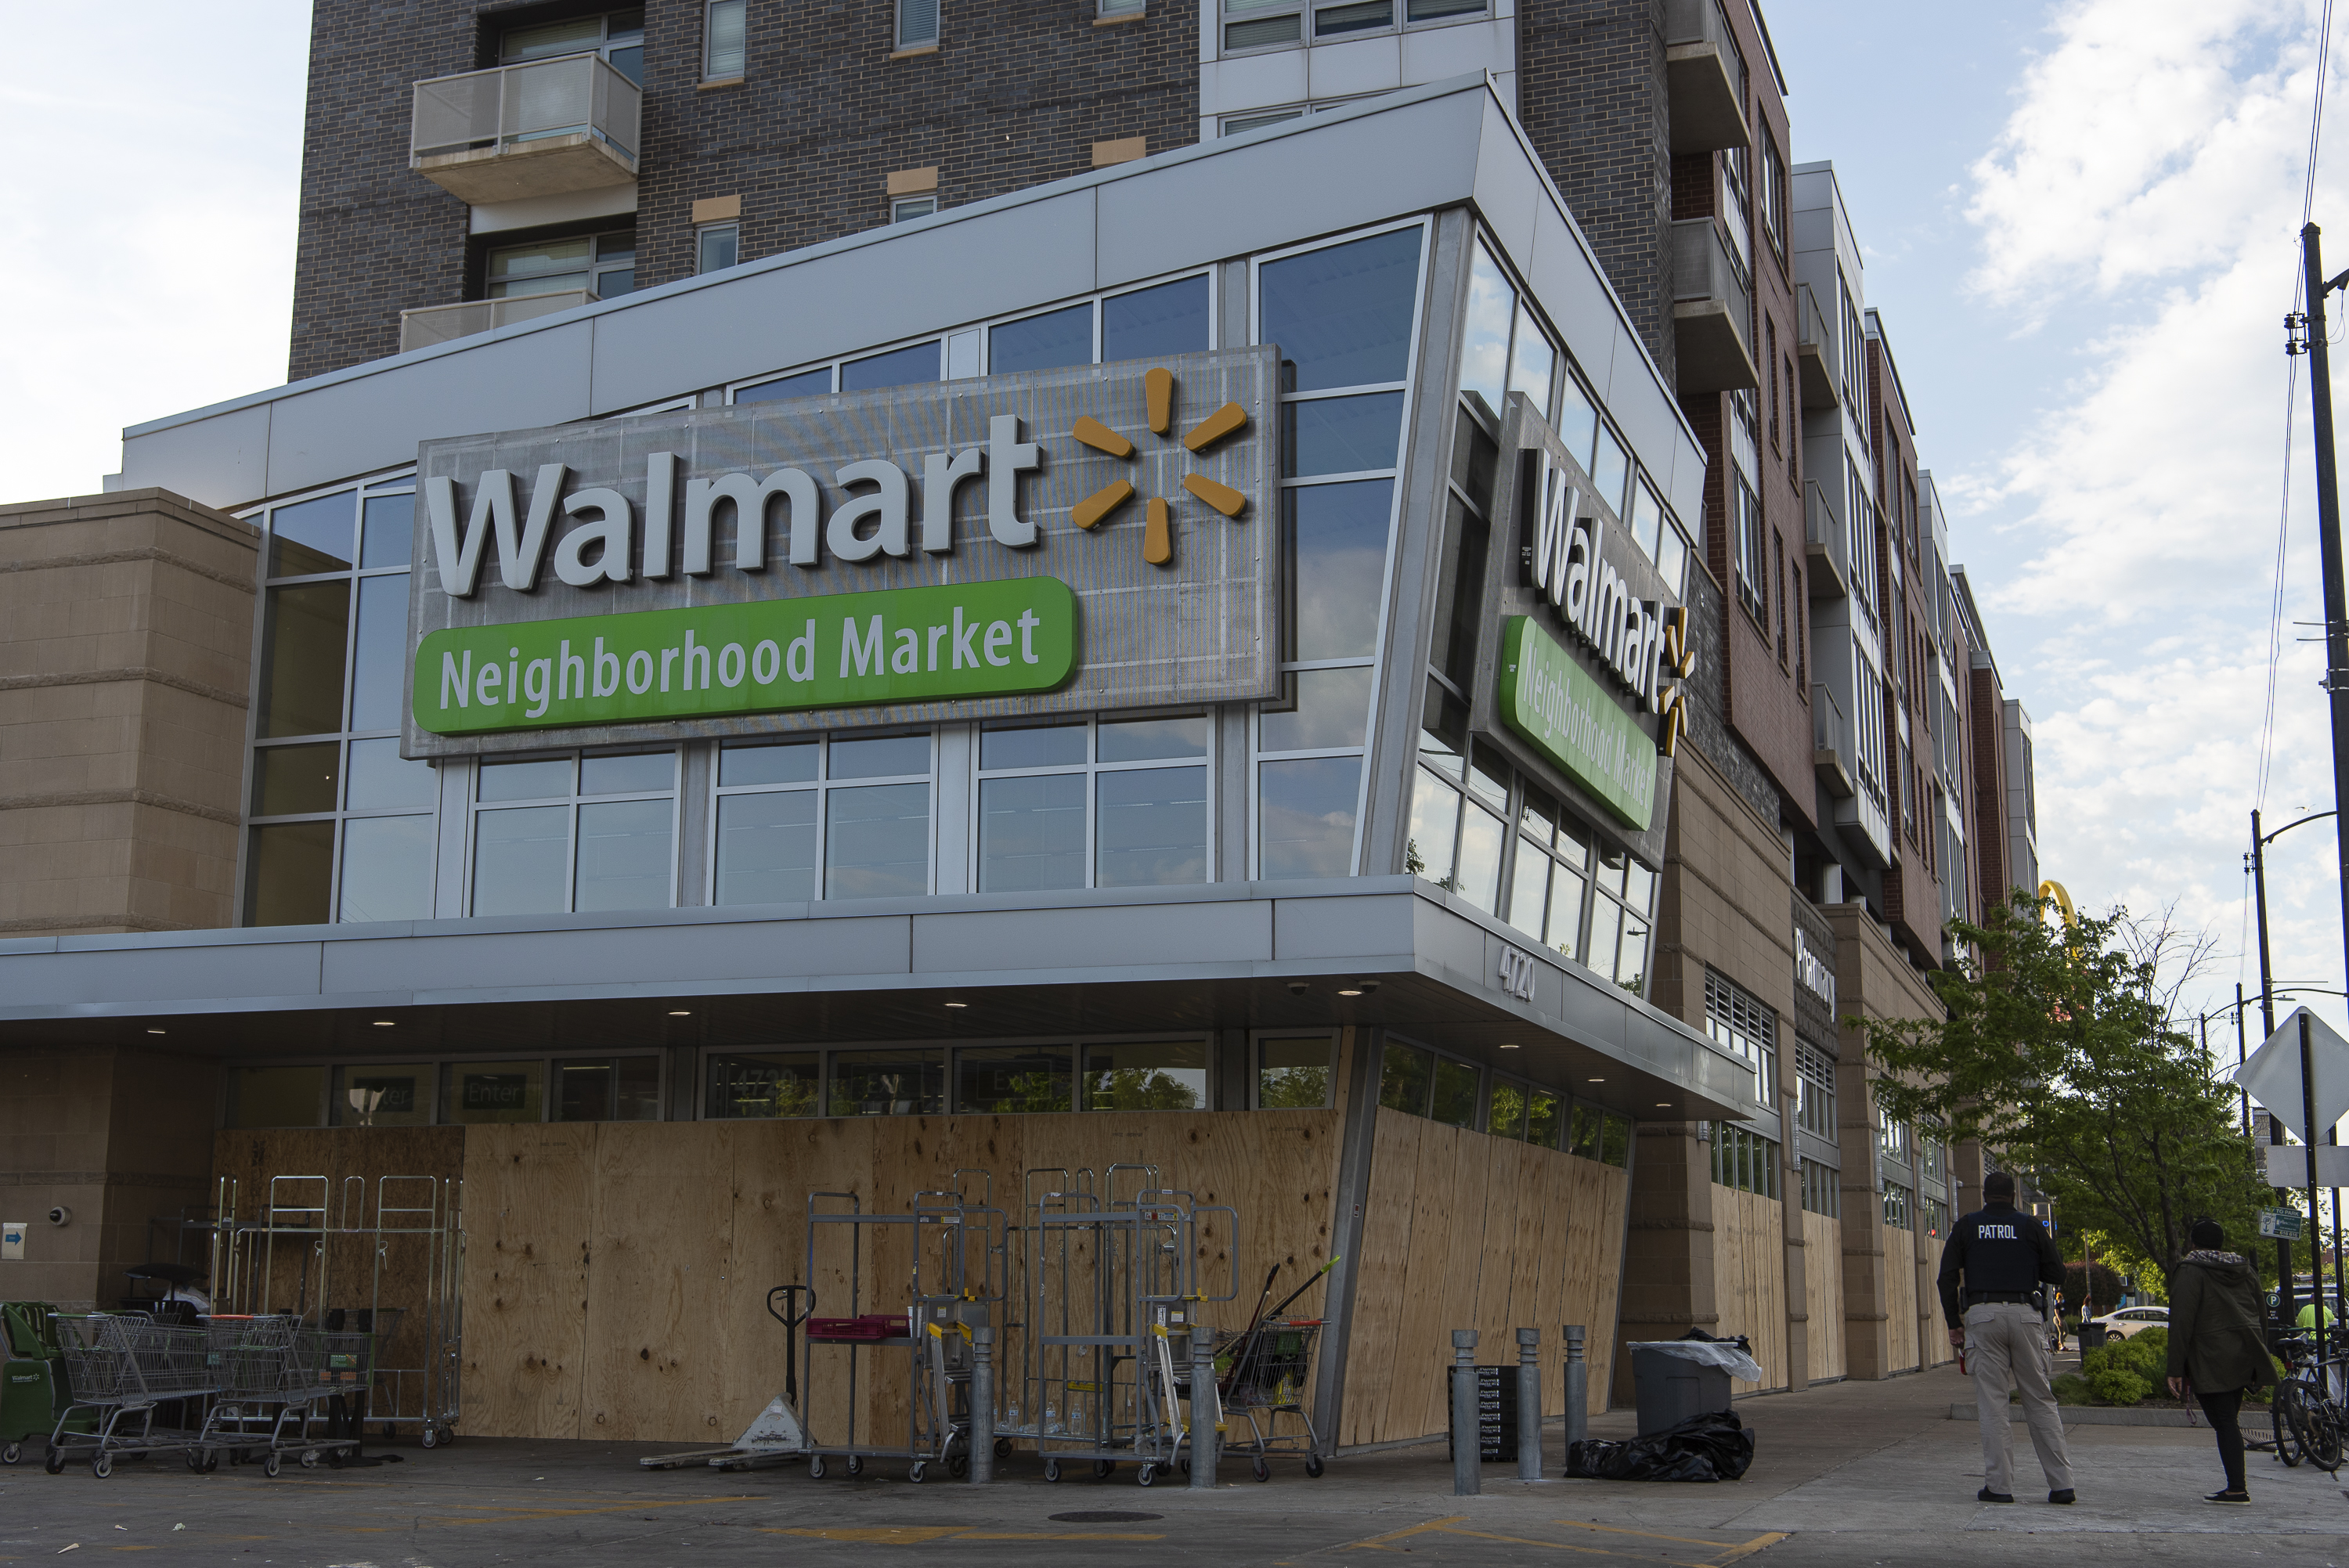 A Walmart Neighborhood Market at 4720 S. Cottage Grove Ave., boarded up earlier this month after it was looted. Scores of businesses were looted throughout the city amid protests over the death of George Floyd in Minneapolis.